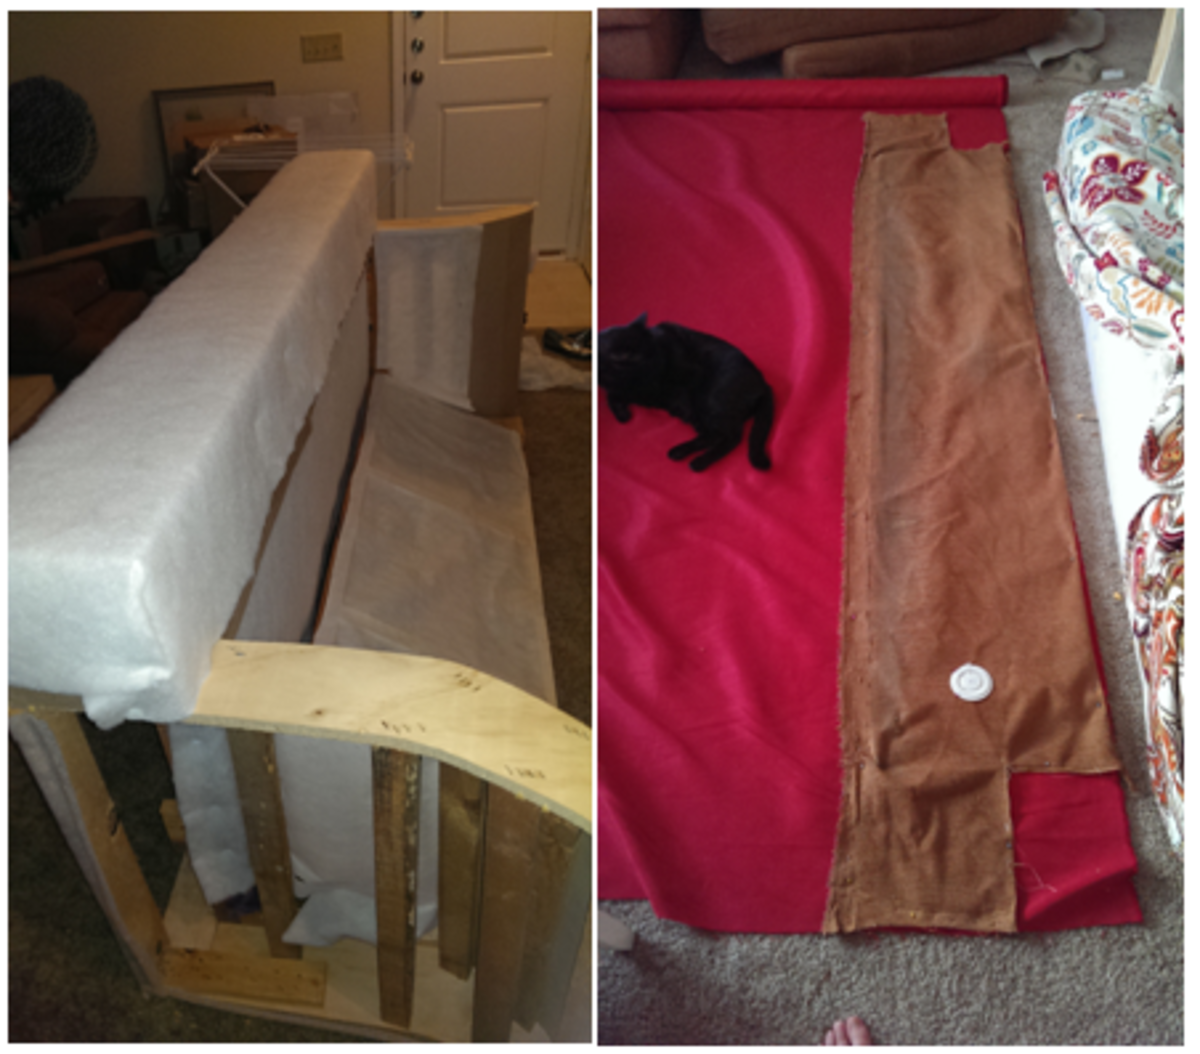 putting on the batting for the foot of the couch, and zeus helping me re-measure the fabric from the bottom of the couch so I got the right shape.